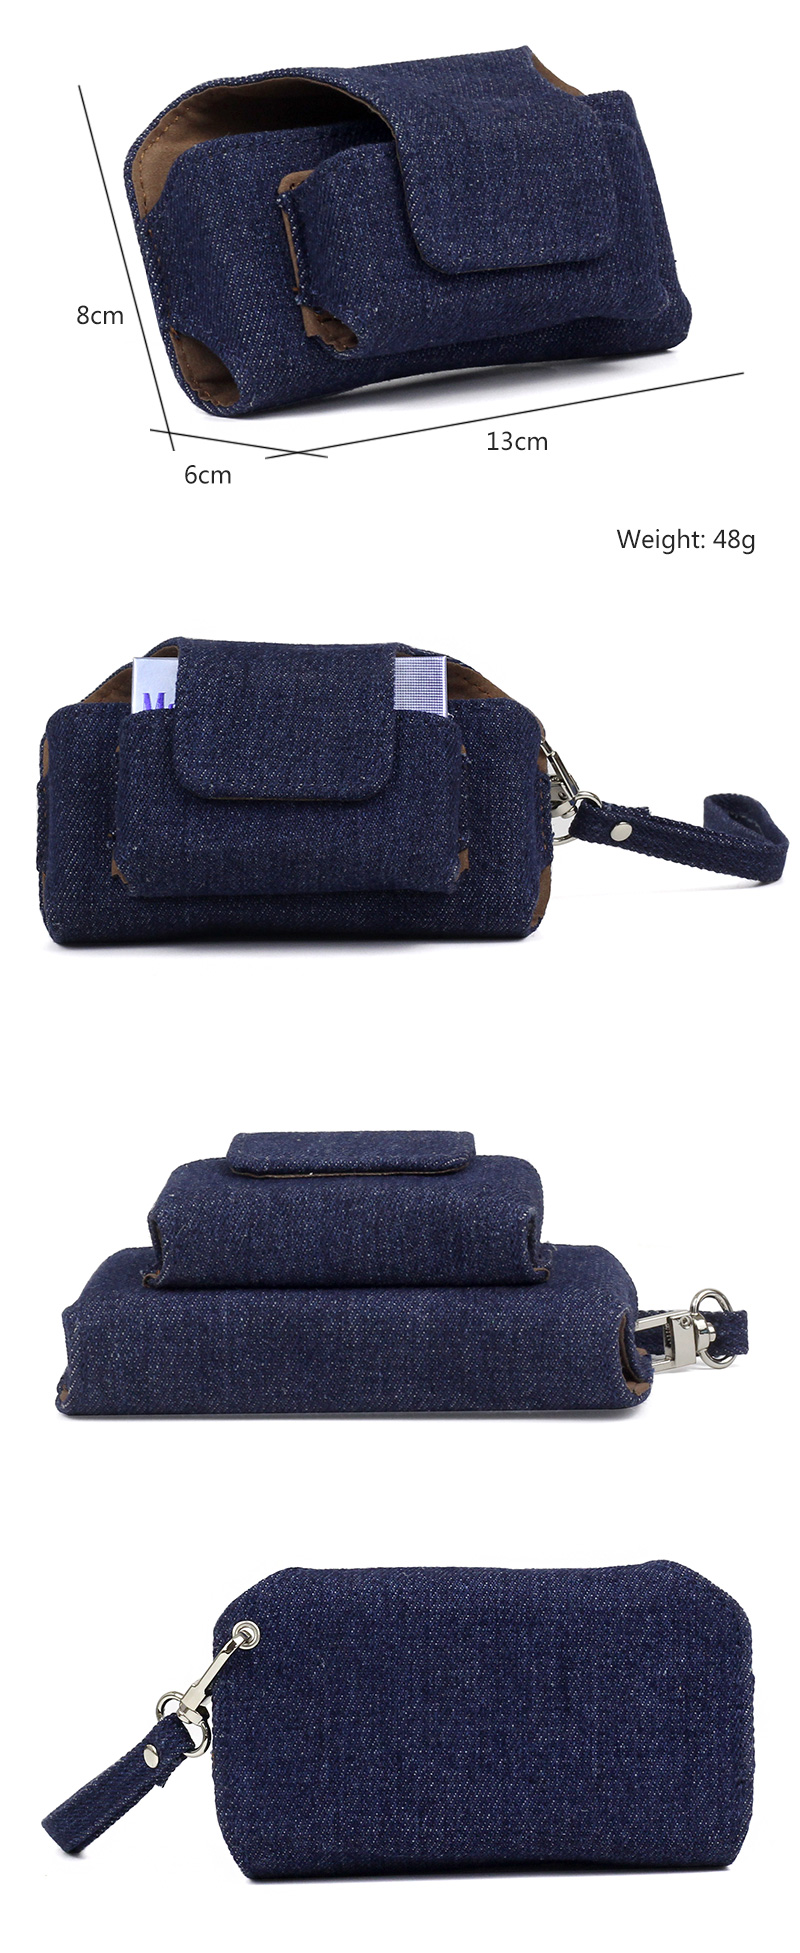 Iqos Denim Cigarette Carry Bag